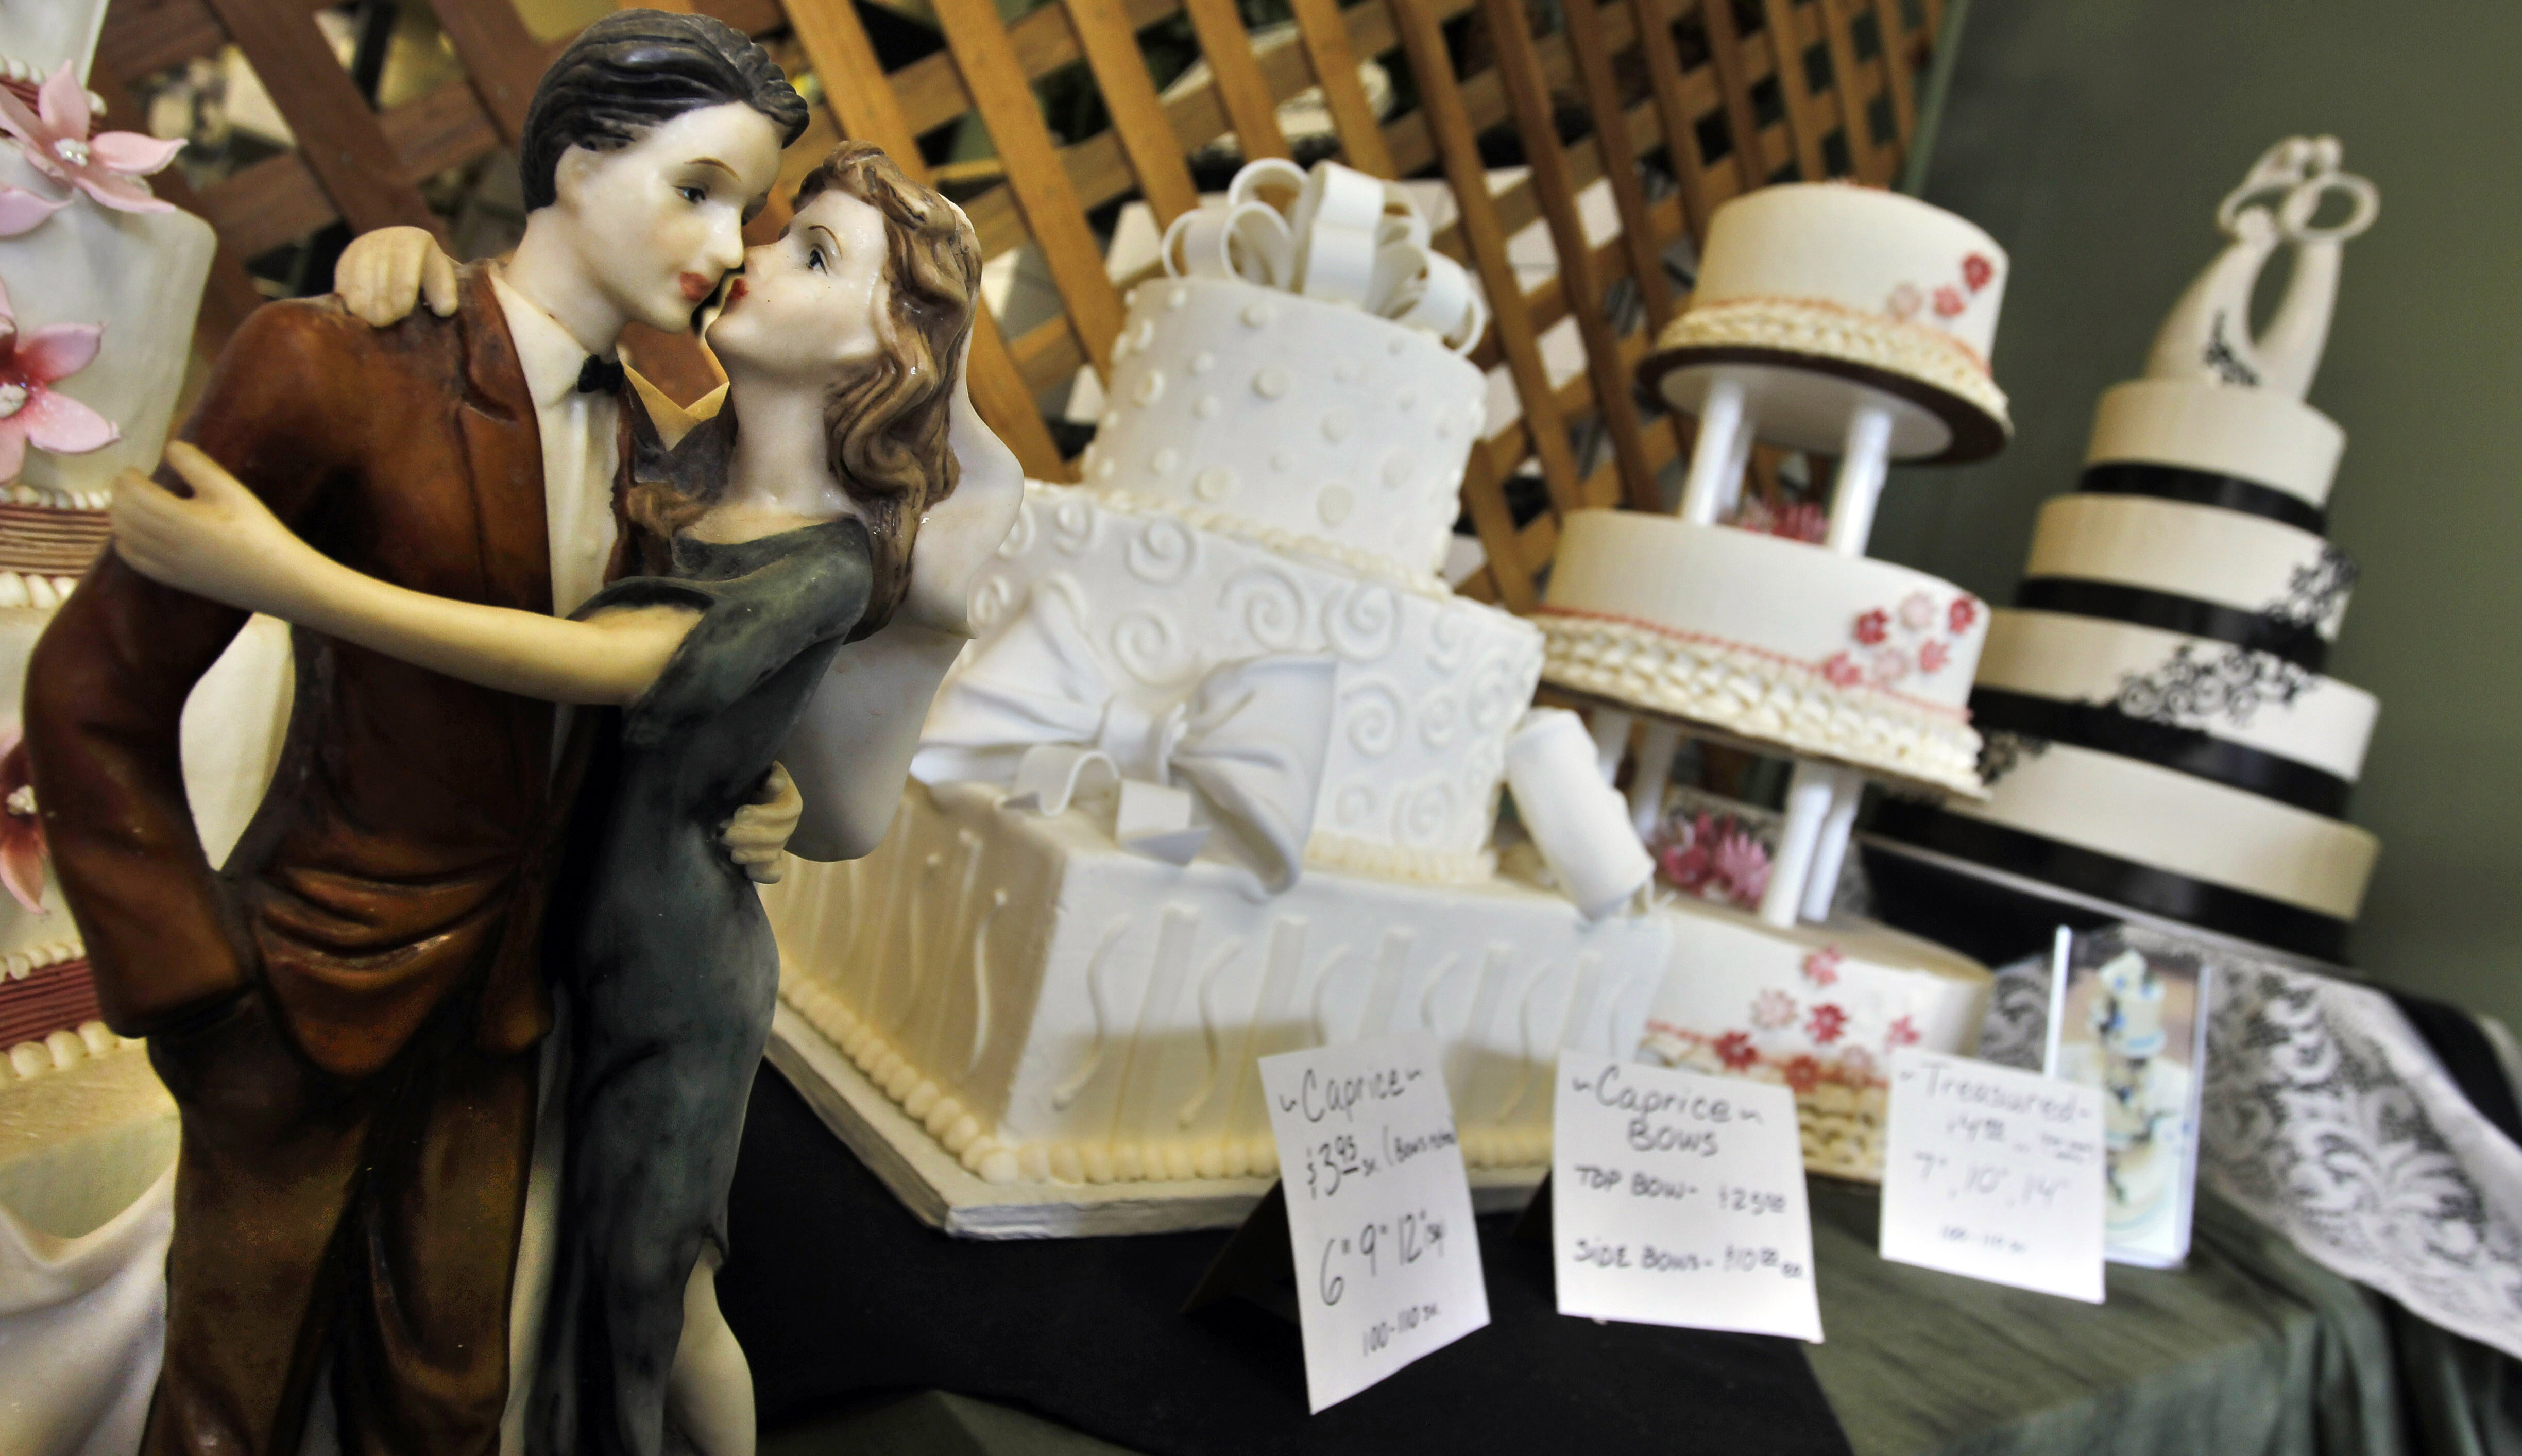 We can have our cake and religious liberty, too